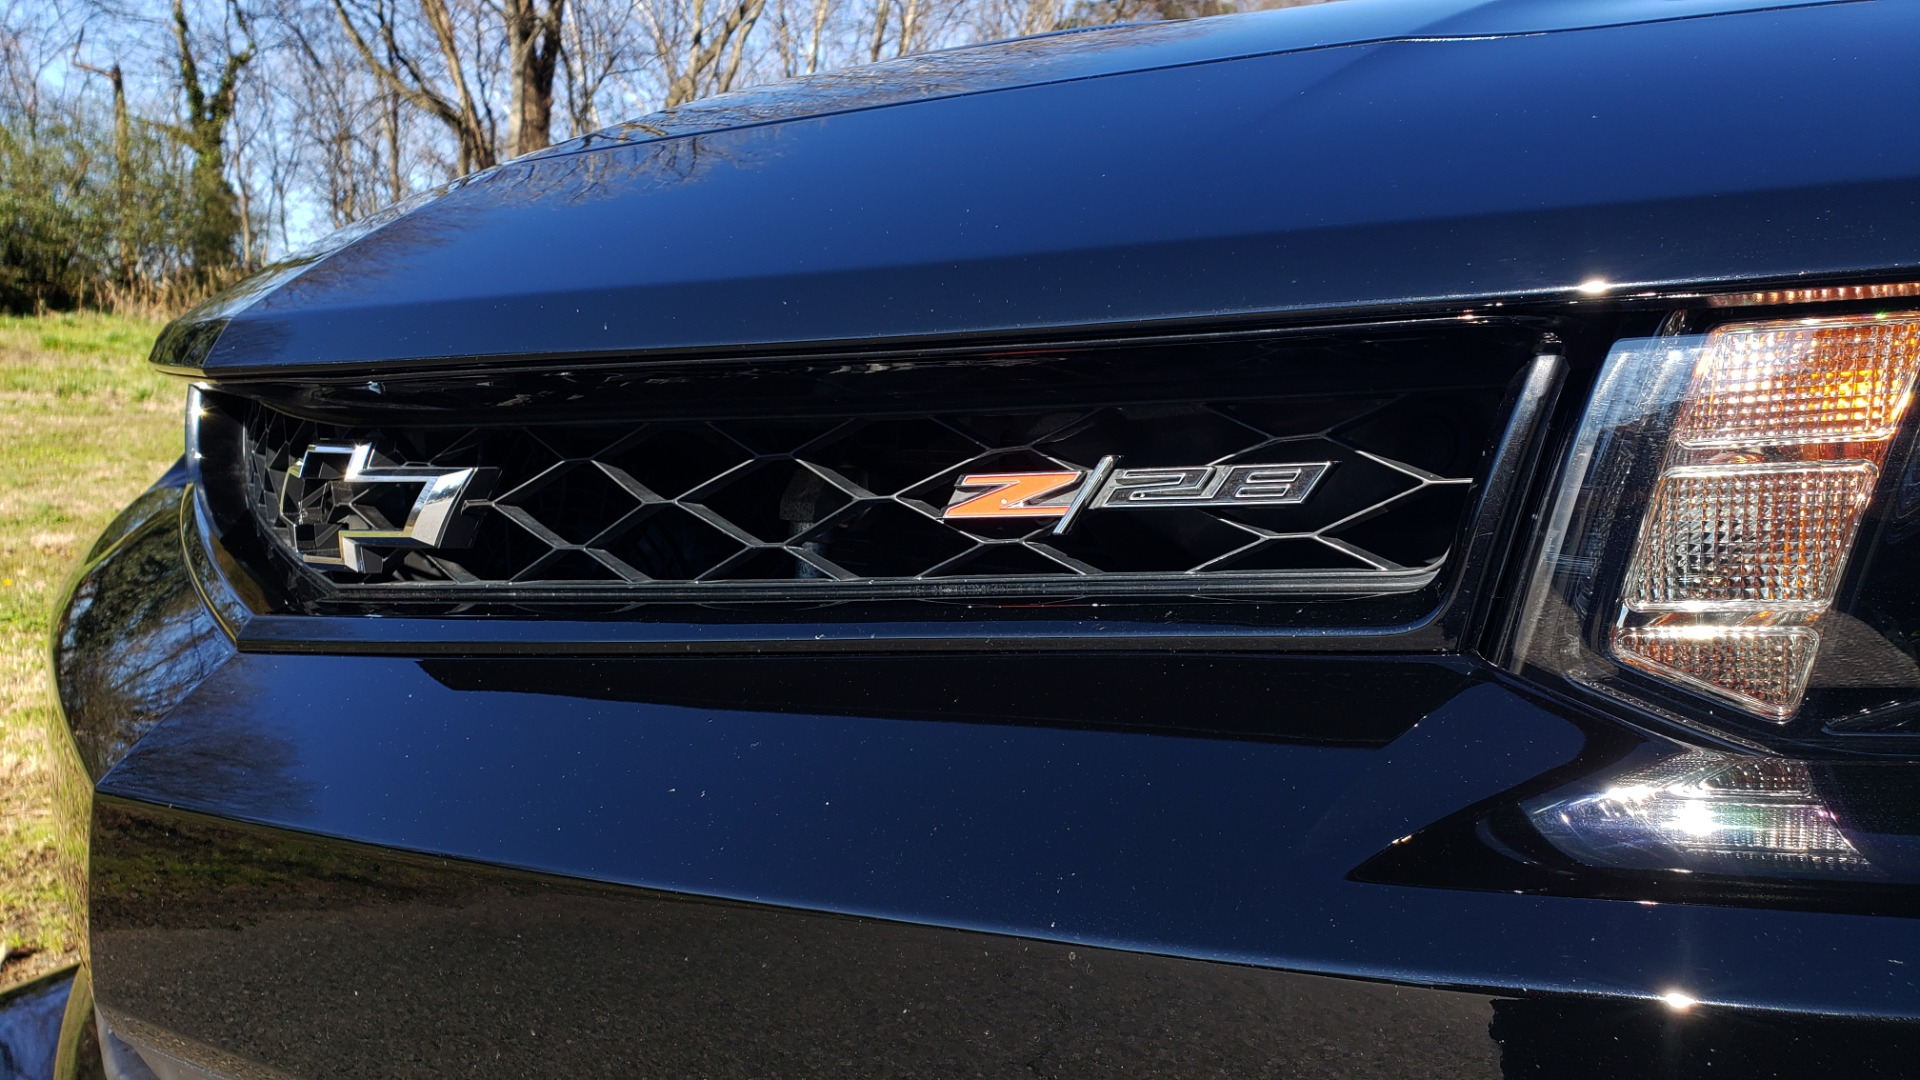 Used 2014 Chevrolet CAMARO Z/28 / 427 7.0L V8 505HP / RADIO / AIR CONDITIONING for sale Sold at Formula Imports in Charlotte NC 28227 24